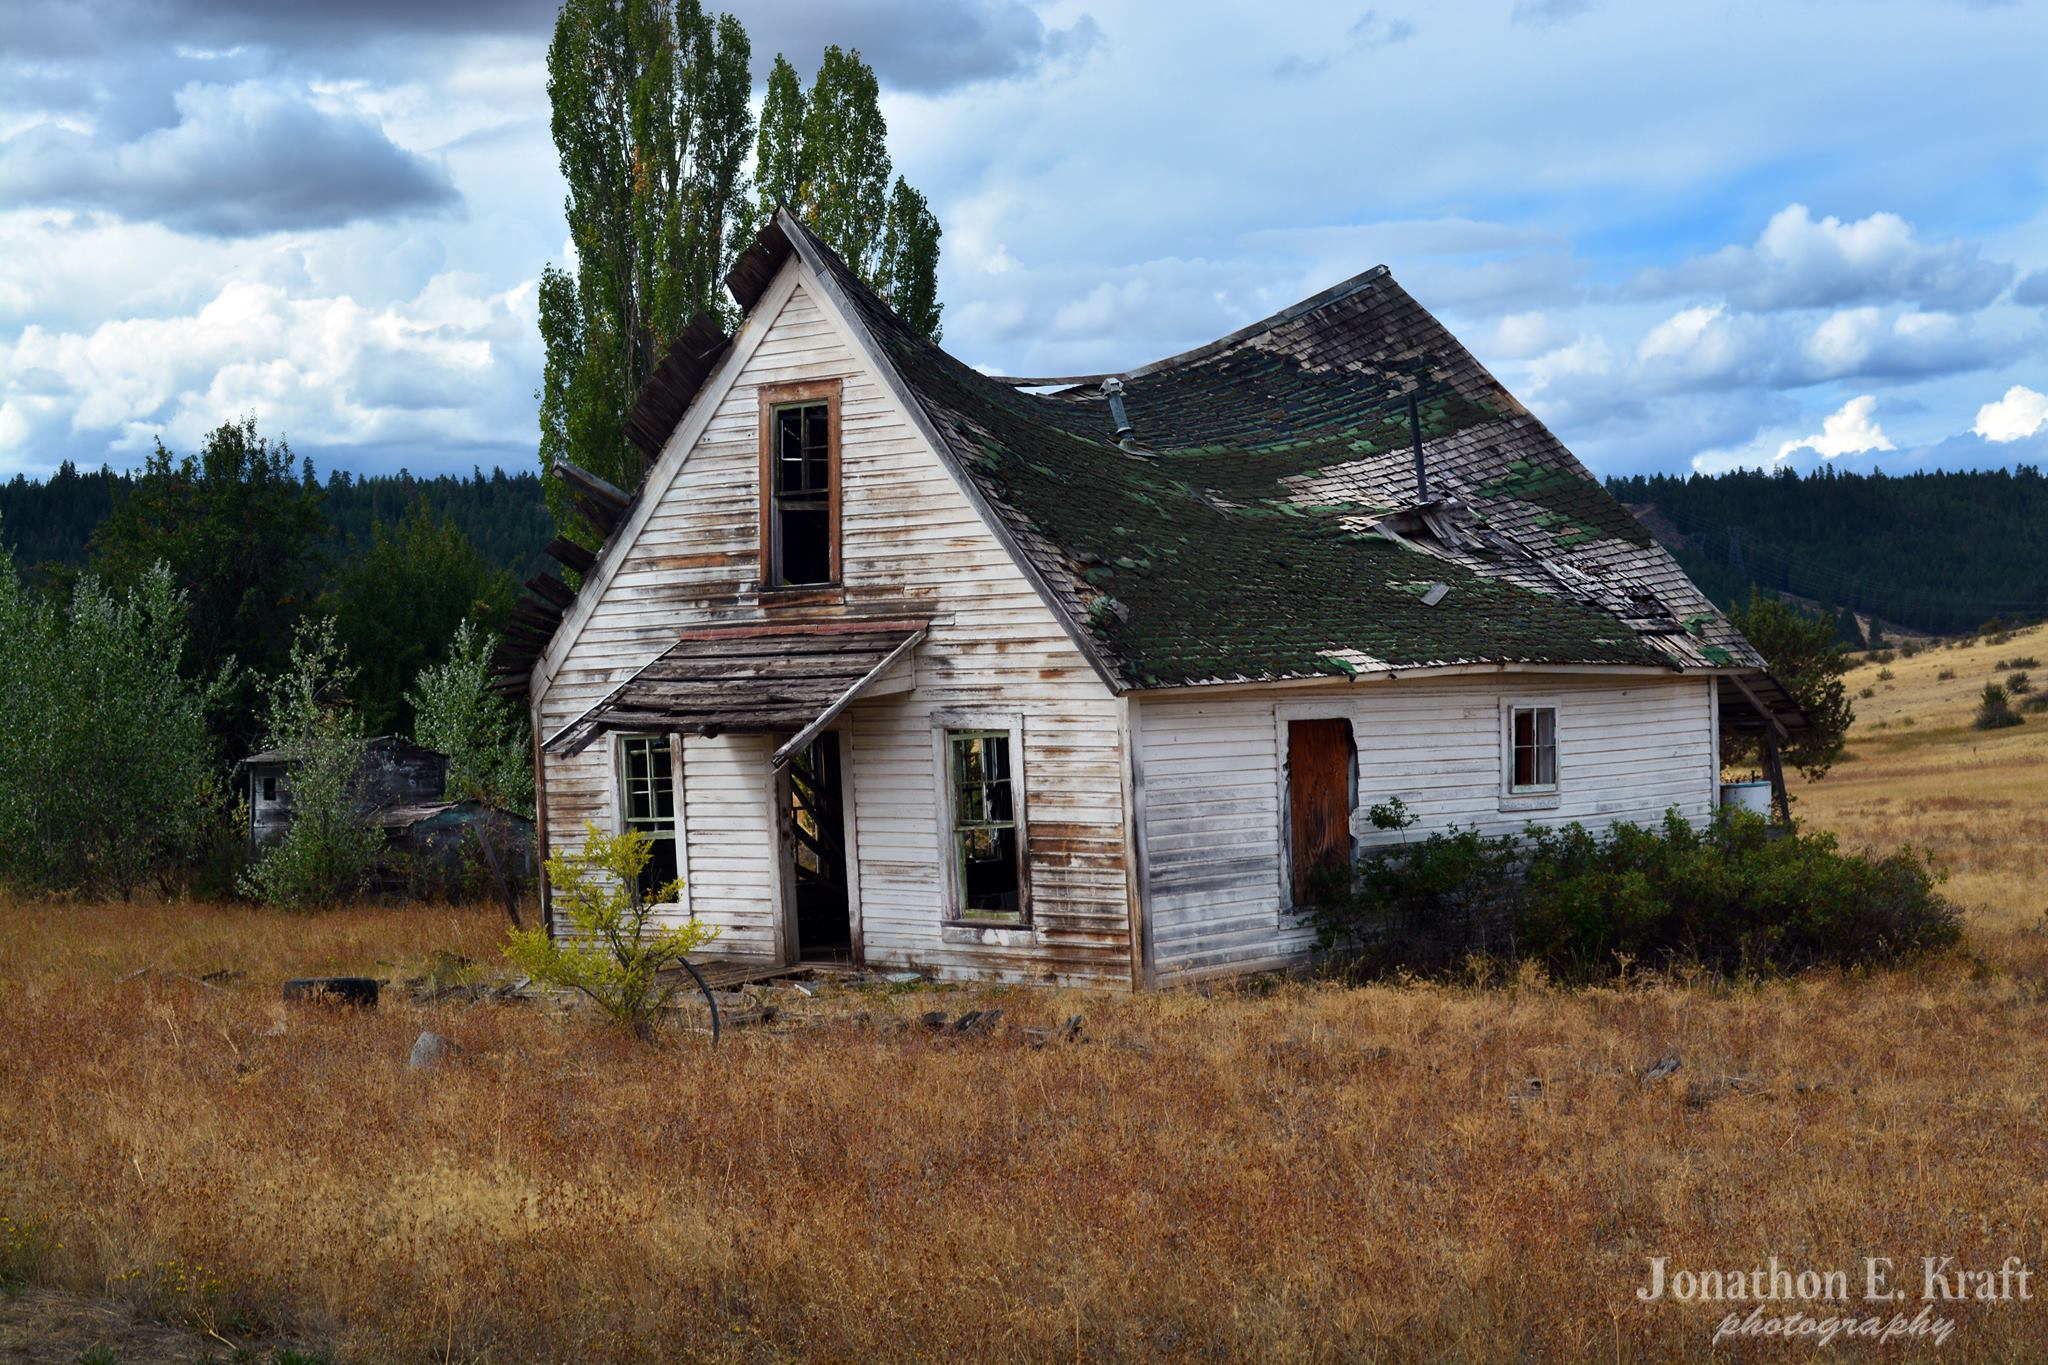 Jon Kraft / Abandoned Oregon